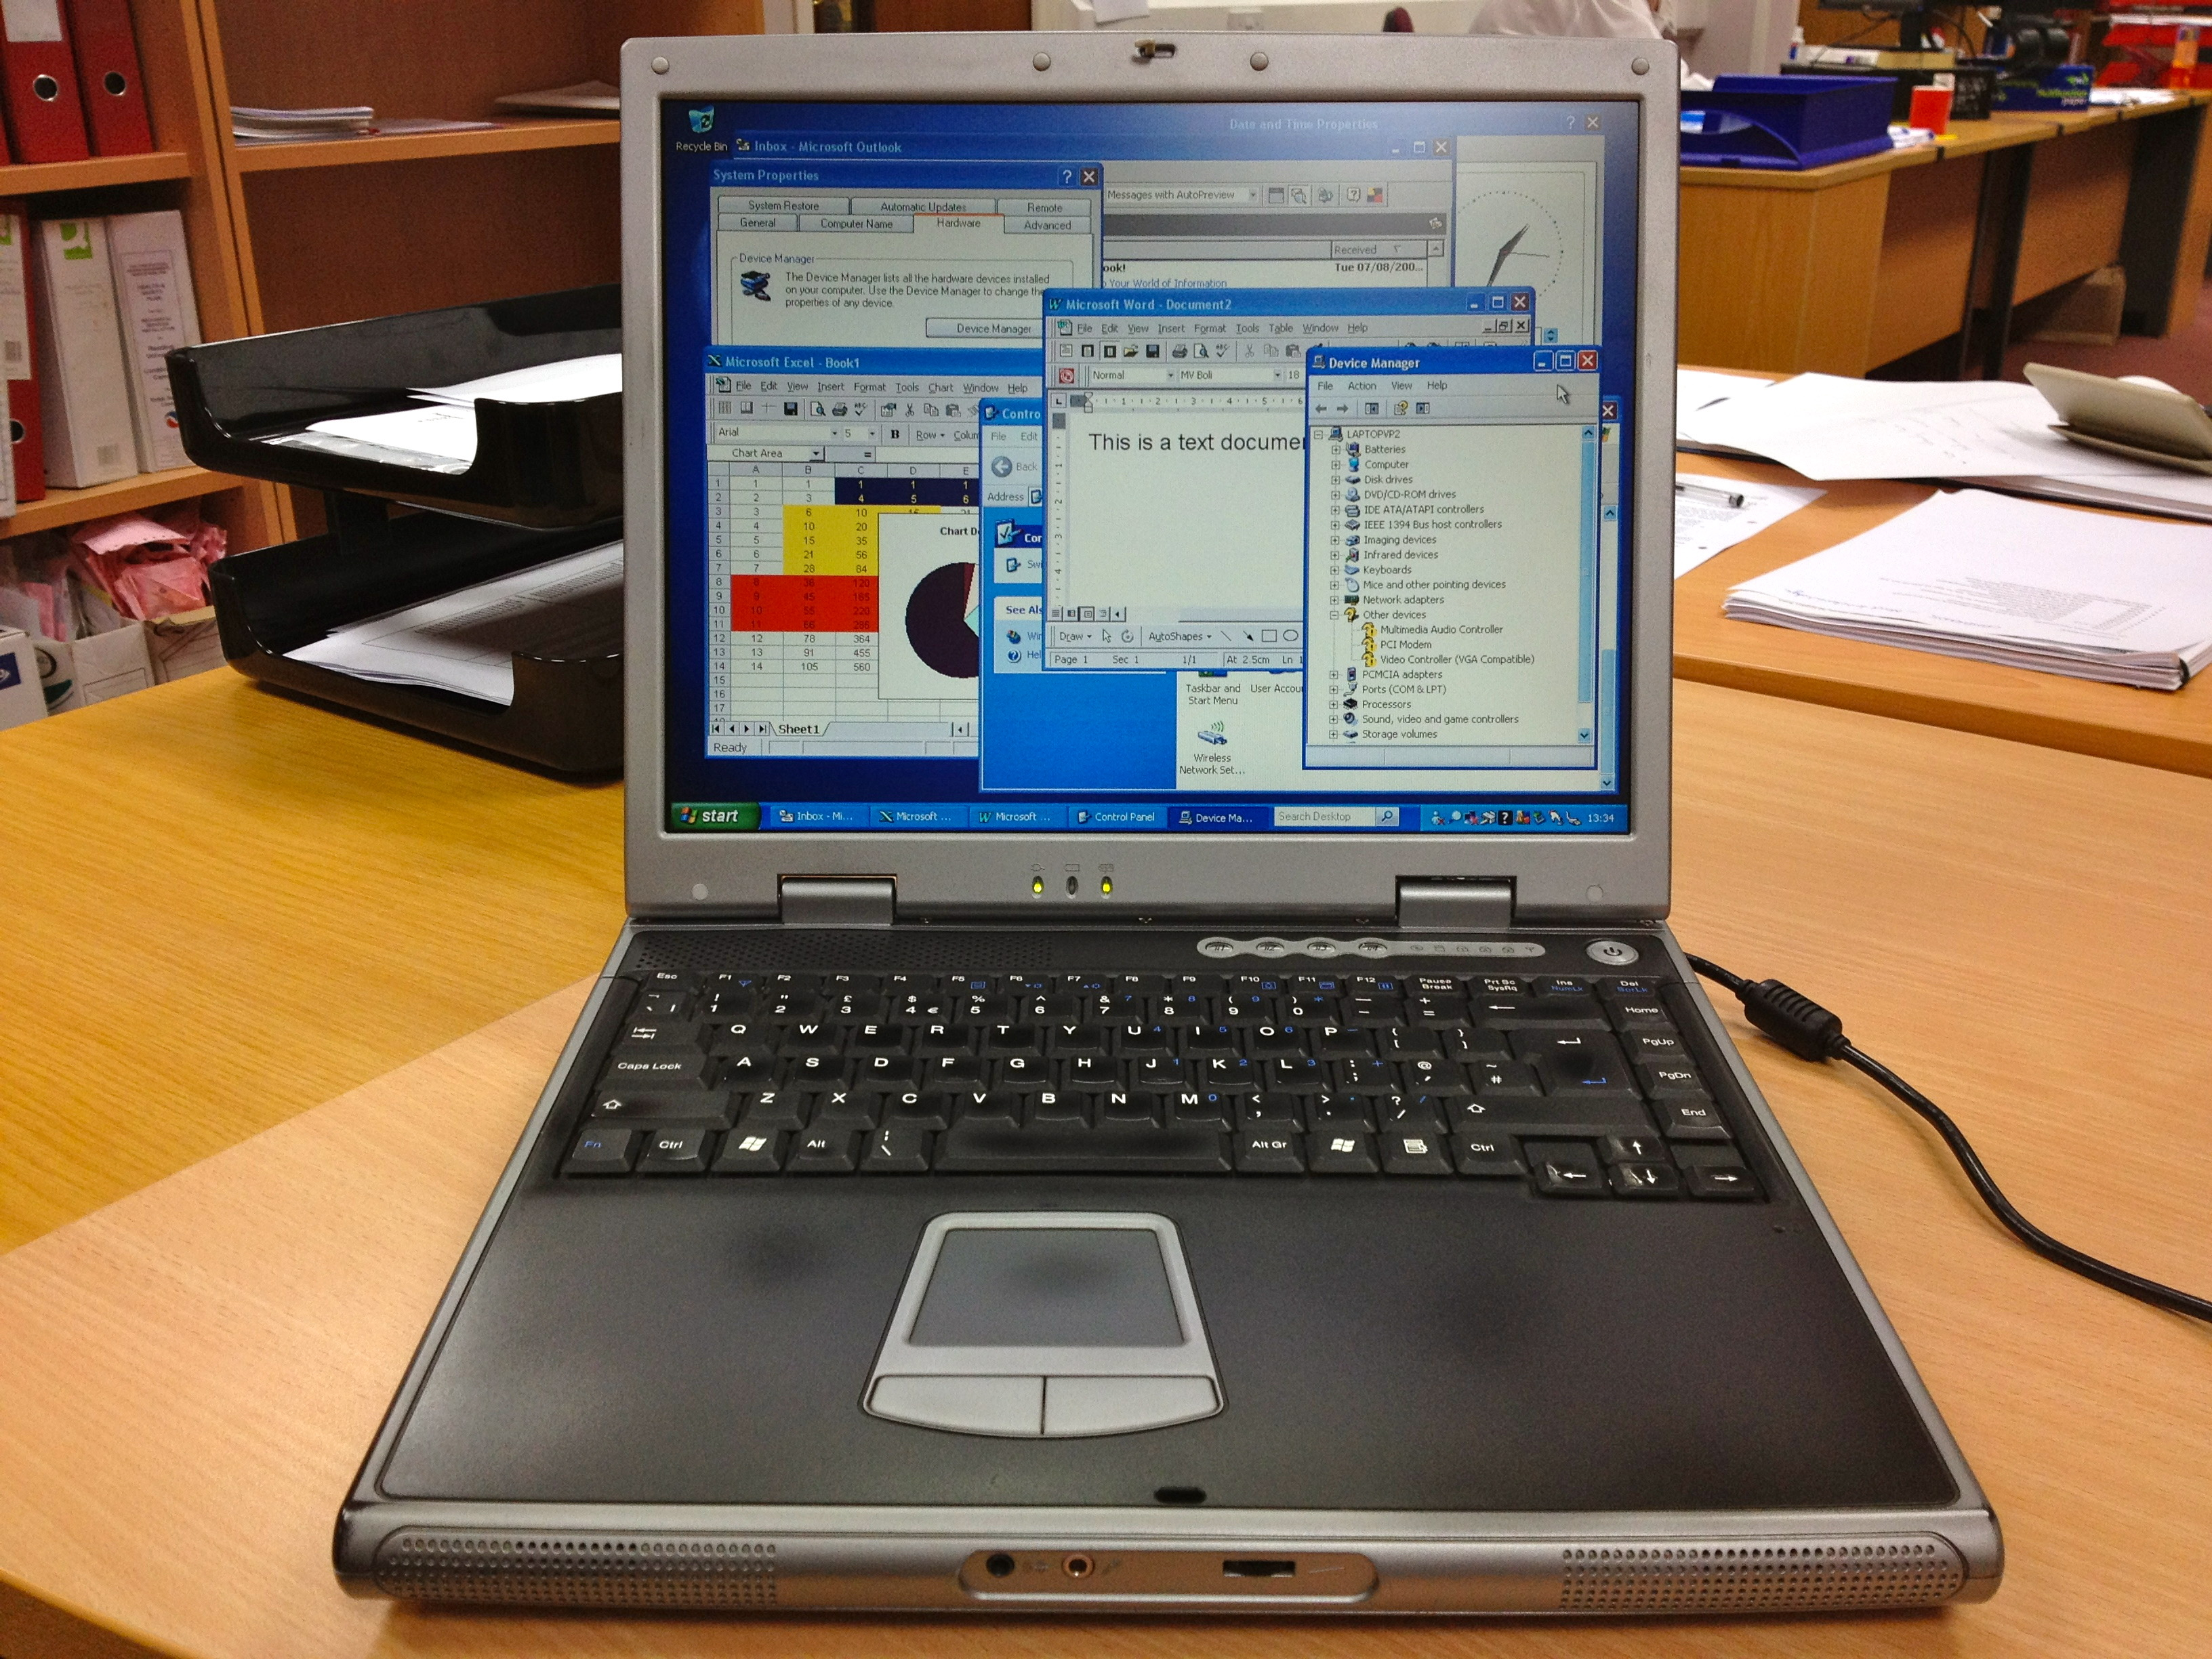 A Novatech laptop opened and showing various opened windows